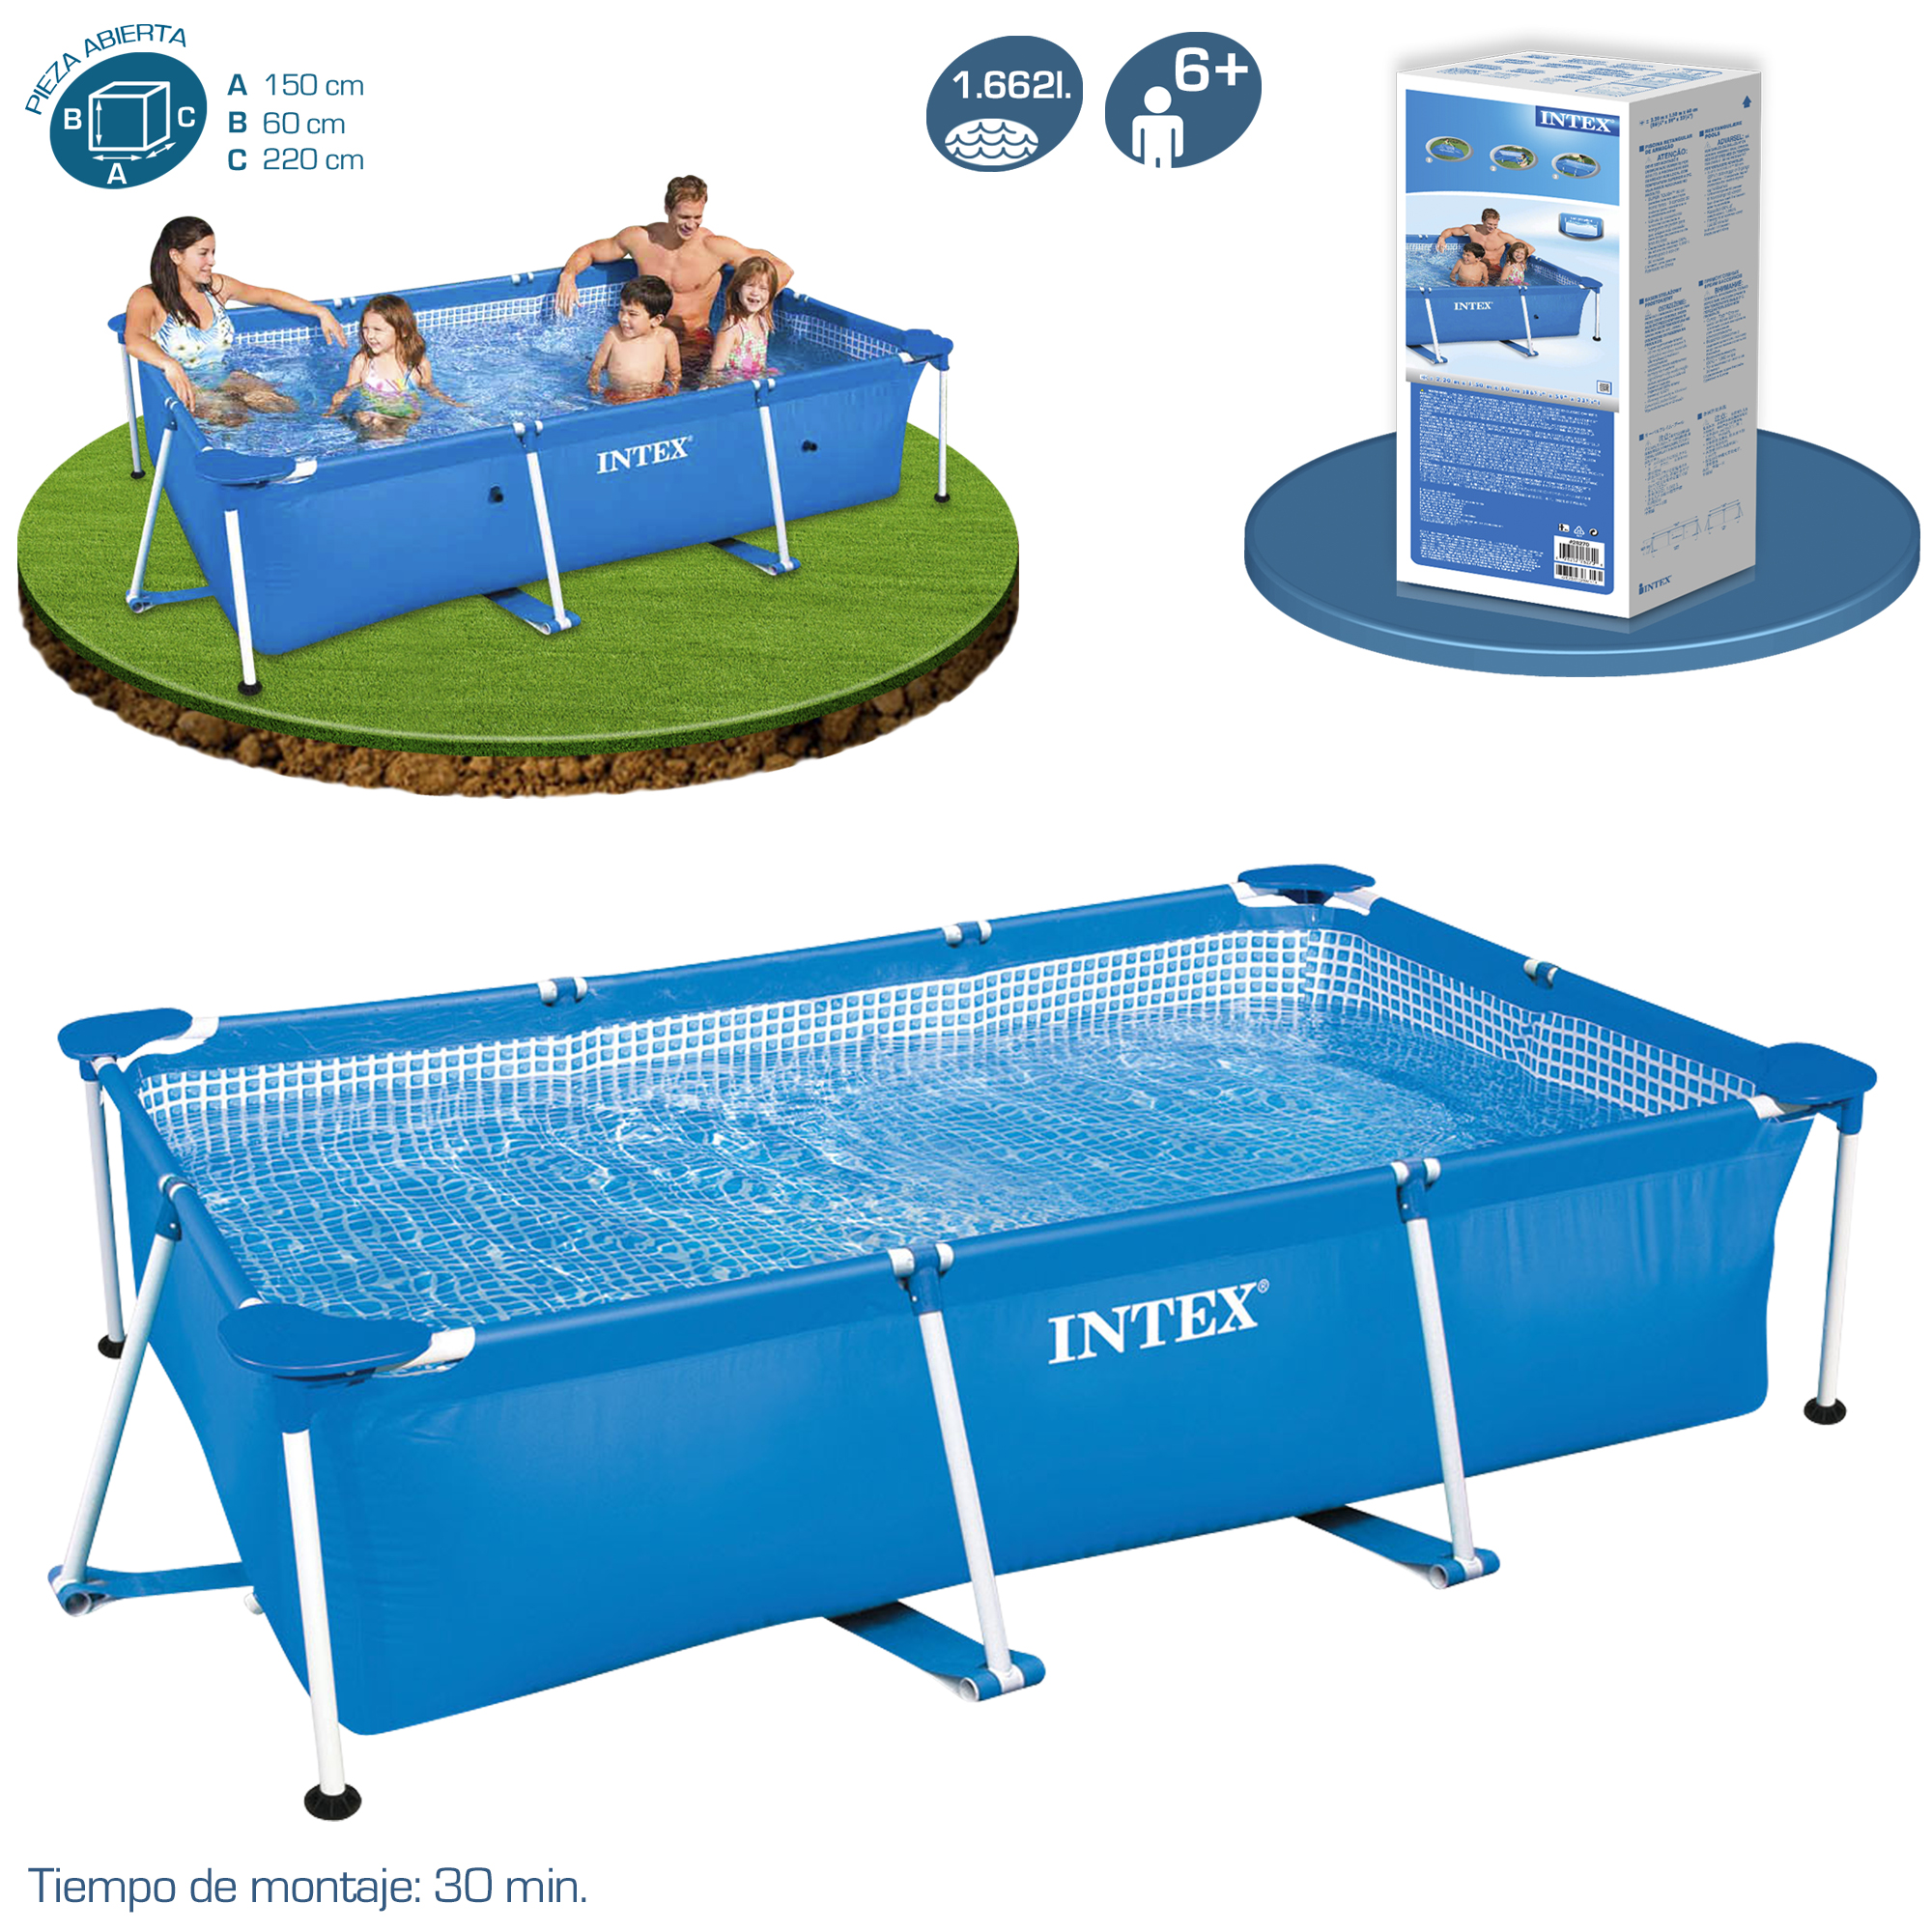 Piscina intex small rectangular frame piscinas desmontables for Ofertas de piscinas estructurales